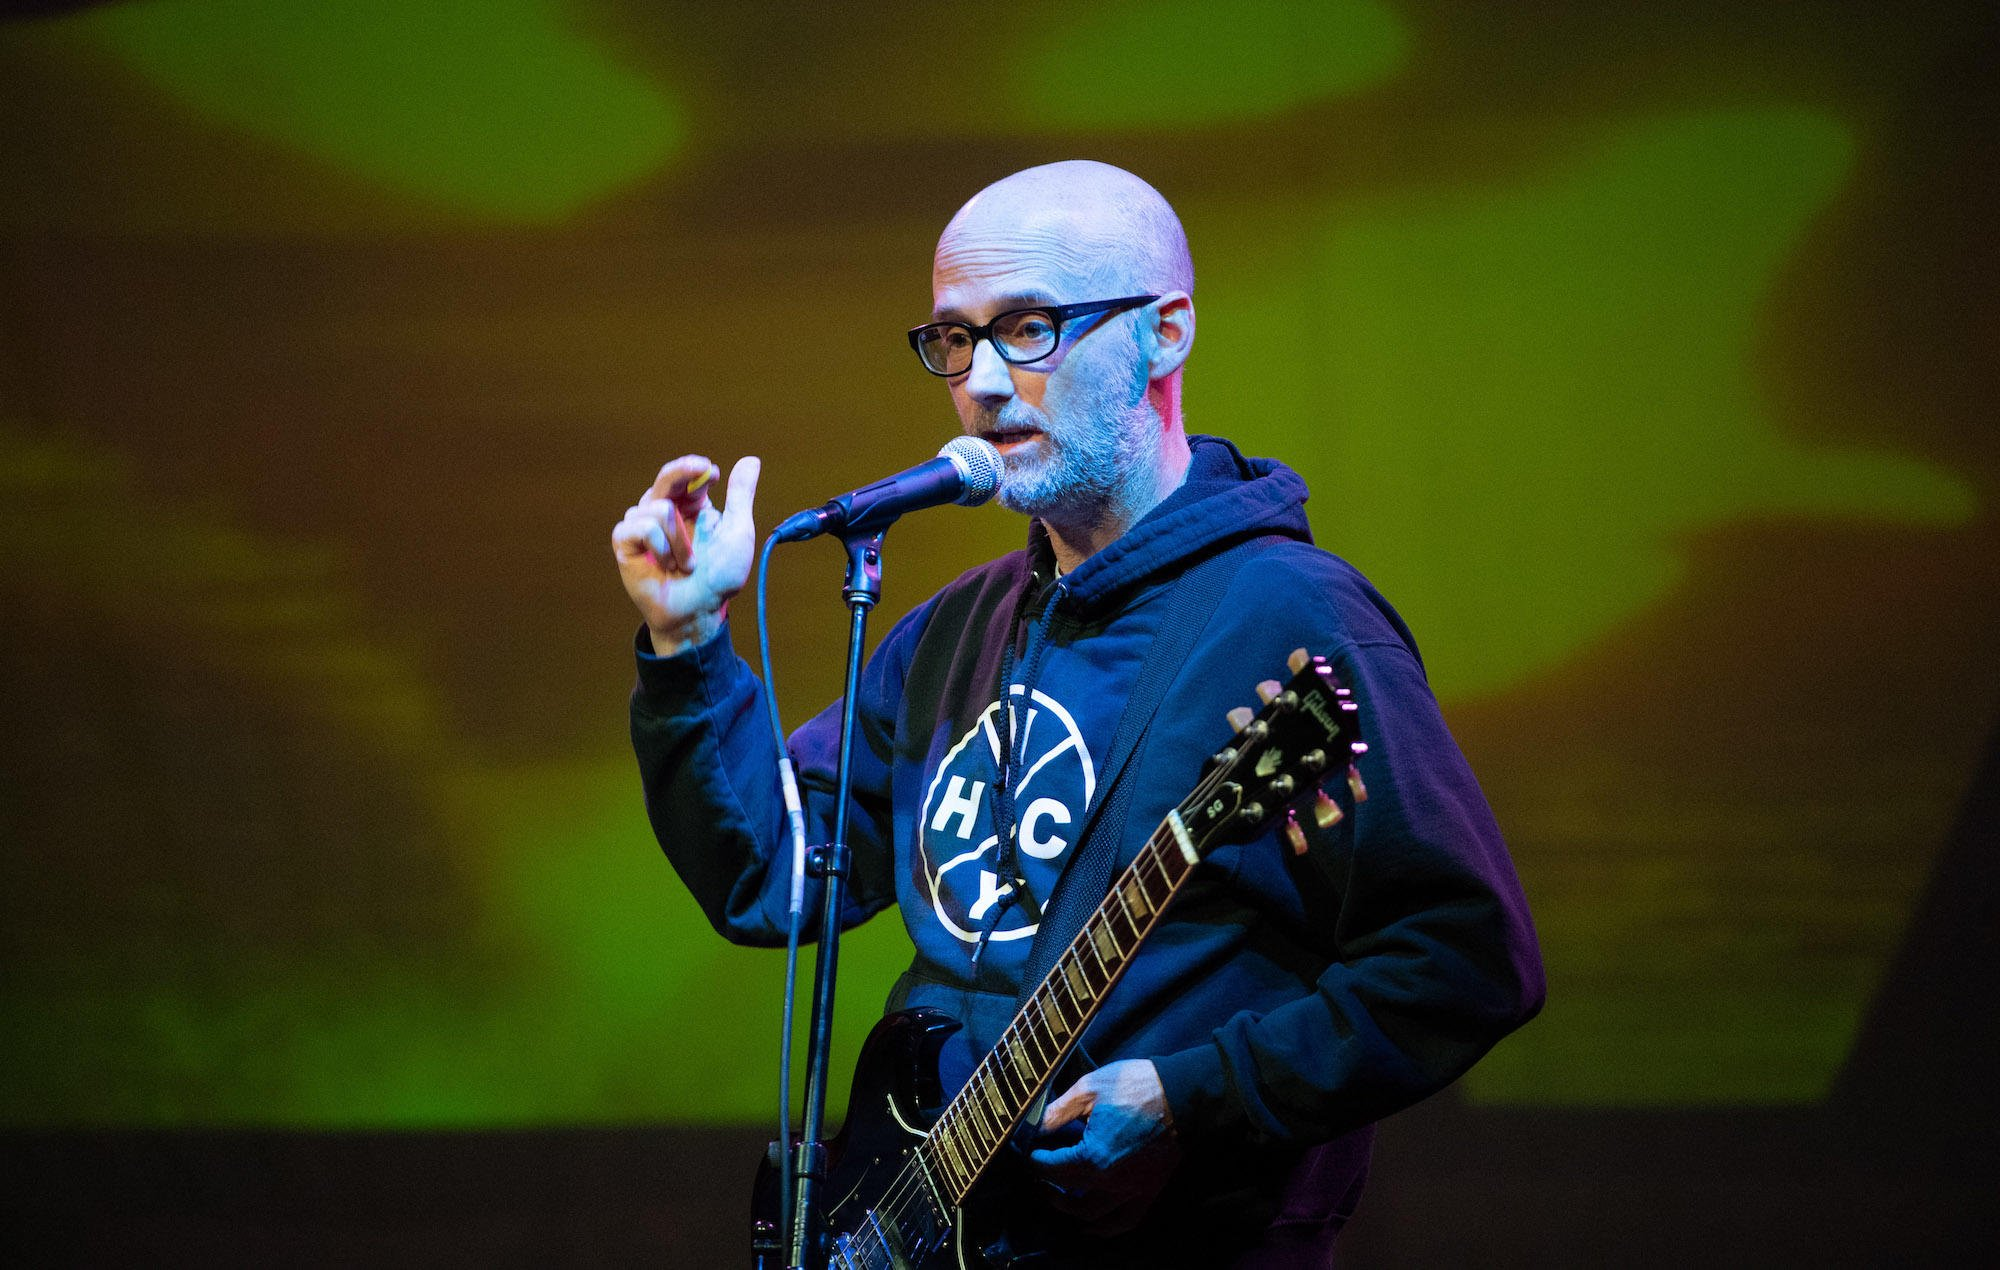 Moby announces new memoir, 'Then It Fell Apart' - 'a journey into the dark heart of fame' https://t.co/FL5DeQumdC https://t.co/YIilGngwb8